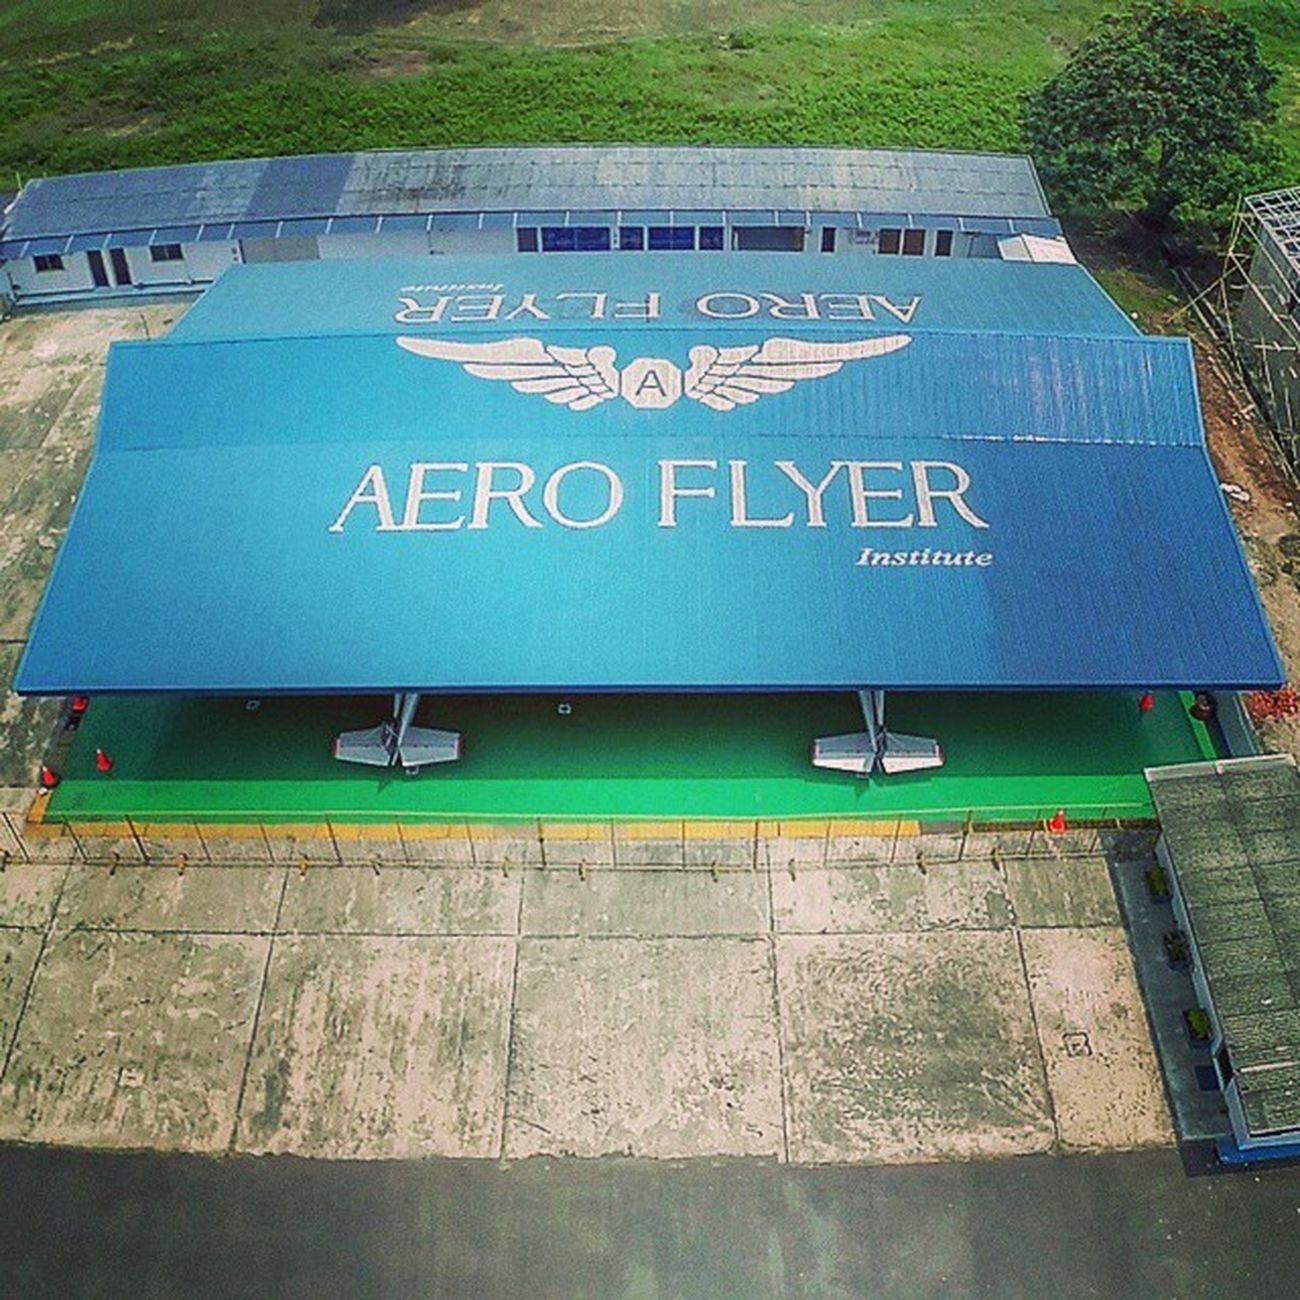 Aeroflyer ✈ Aviation Flyingschool Stpi Bandarabudiarto gopro goproid goprooftheday